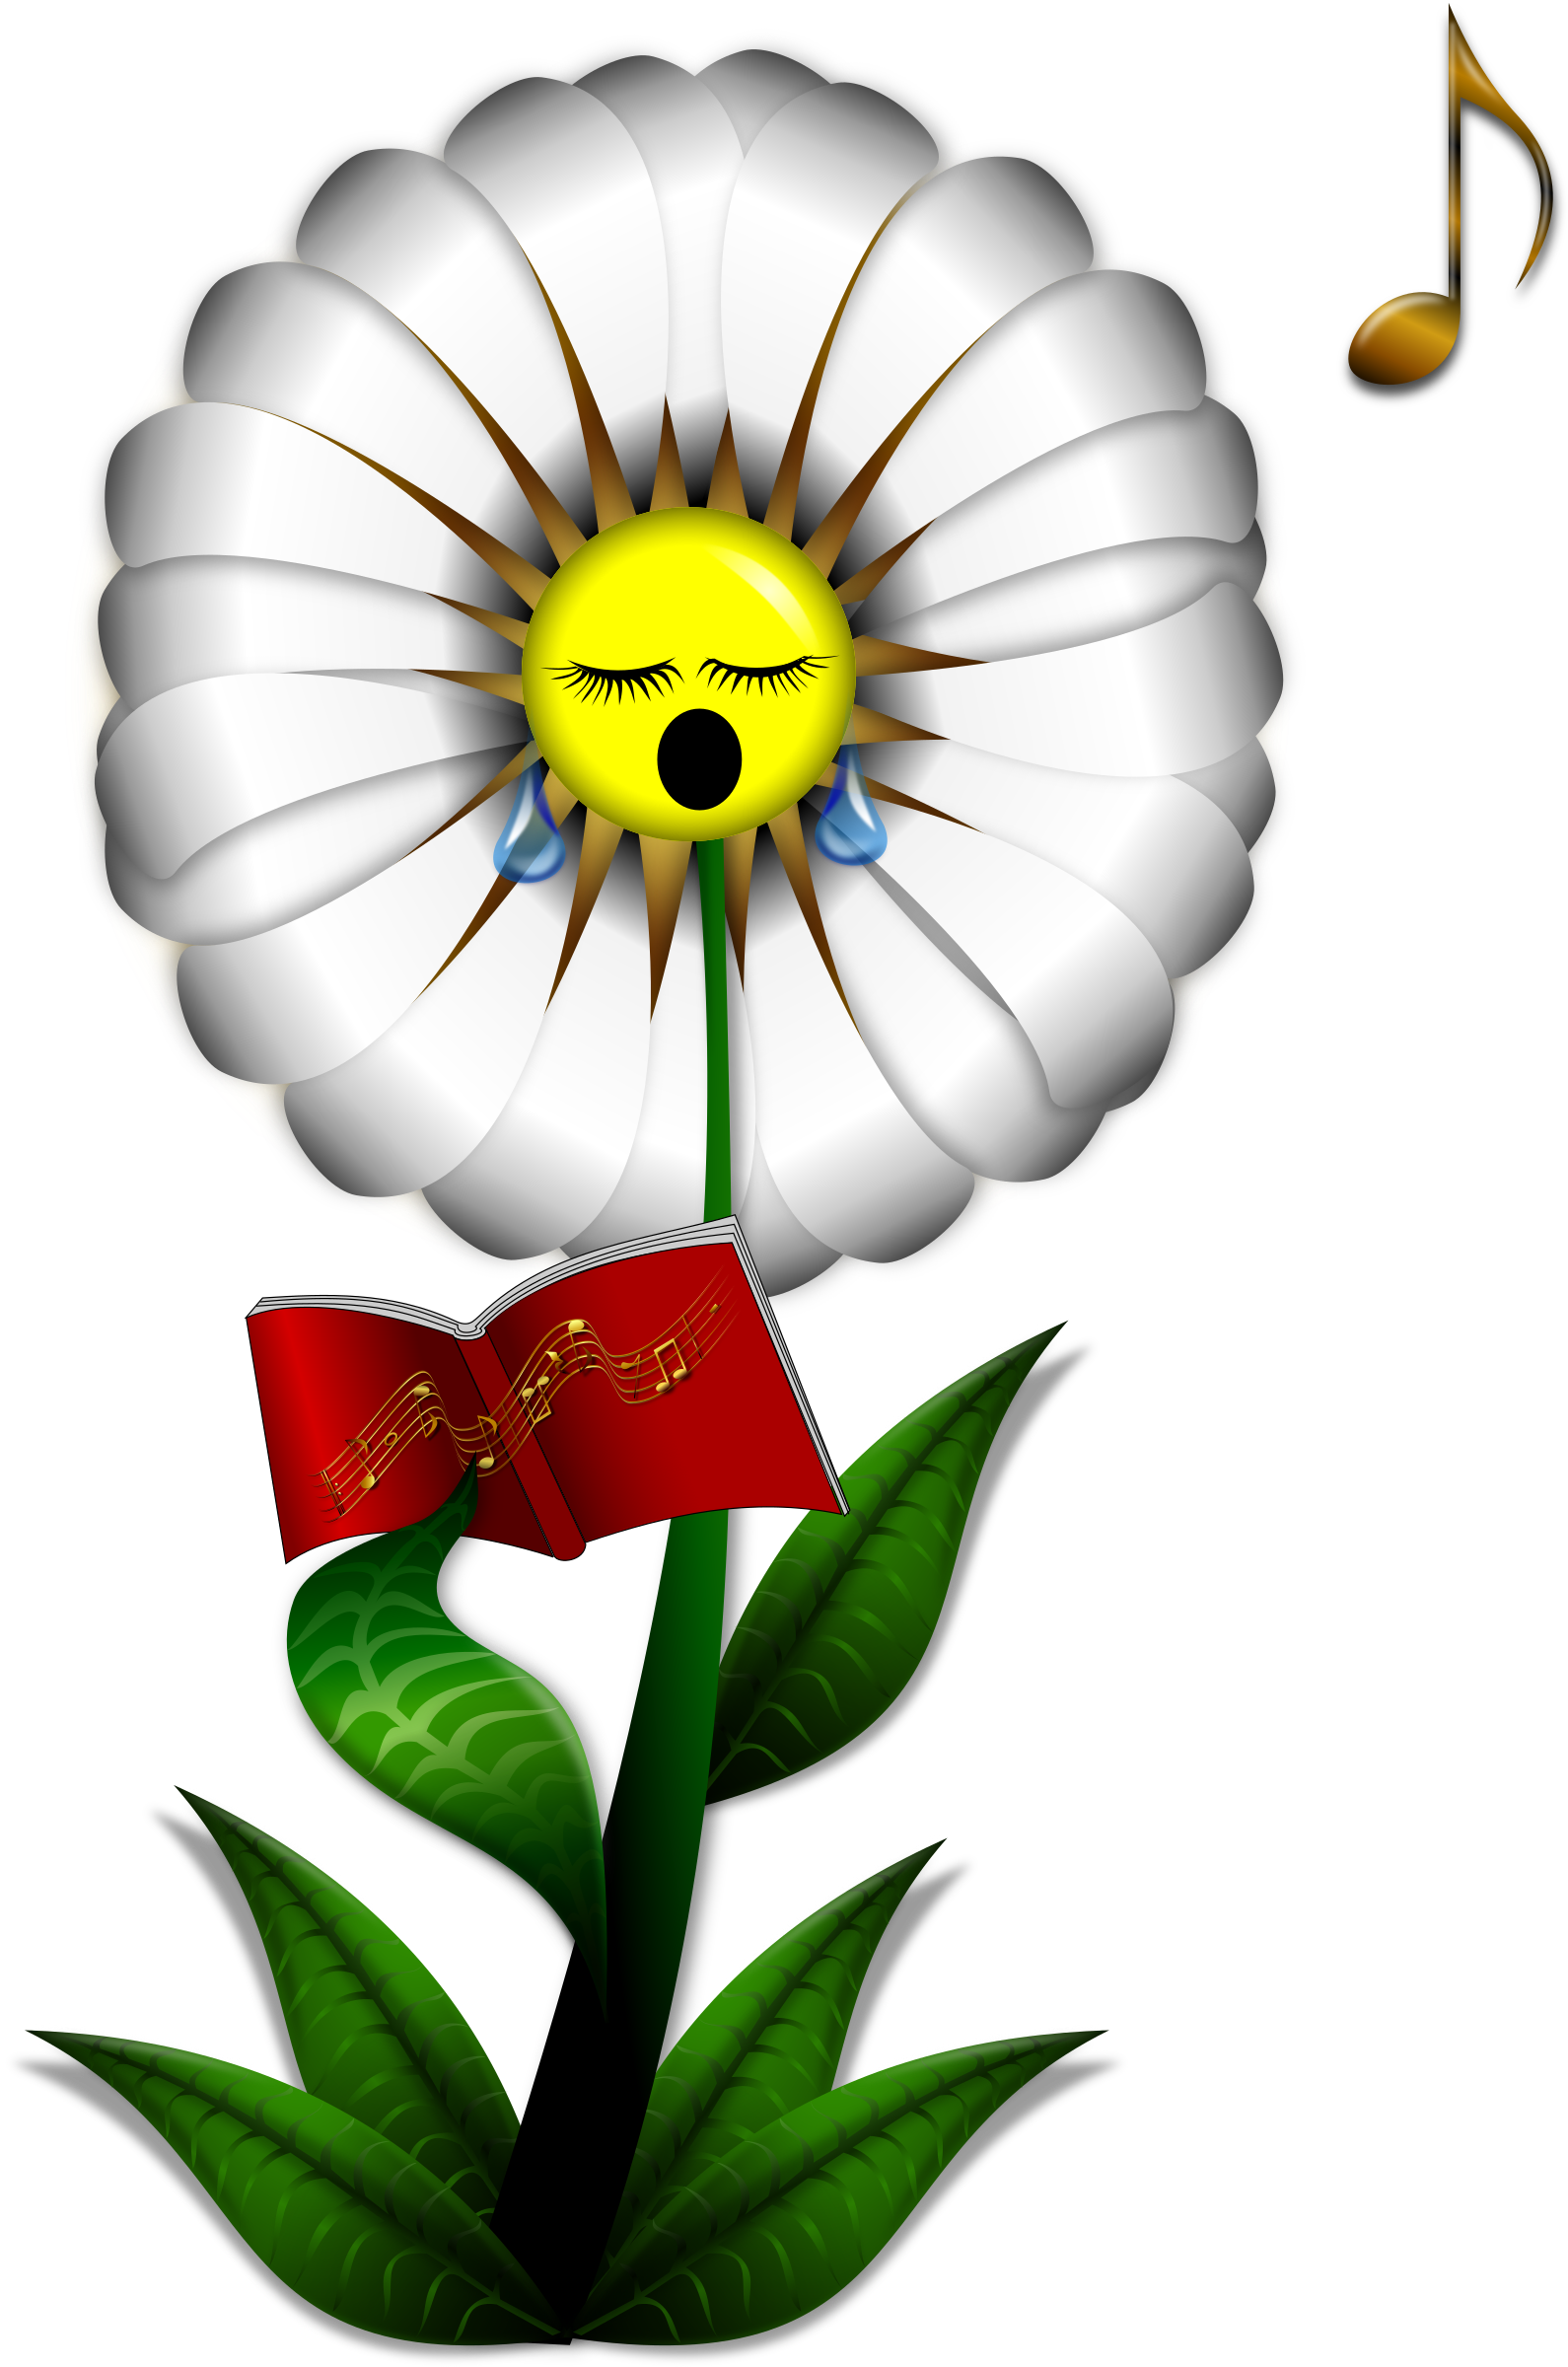 Flower faces clipart clip freeuse stock Clipart - Singing Daisy clip freeuse stock